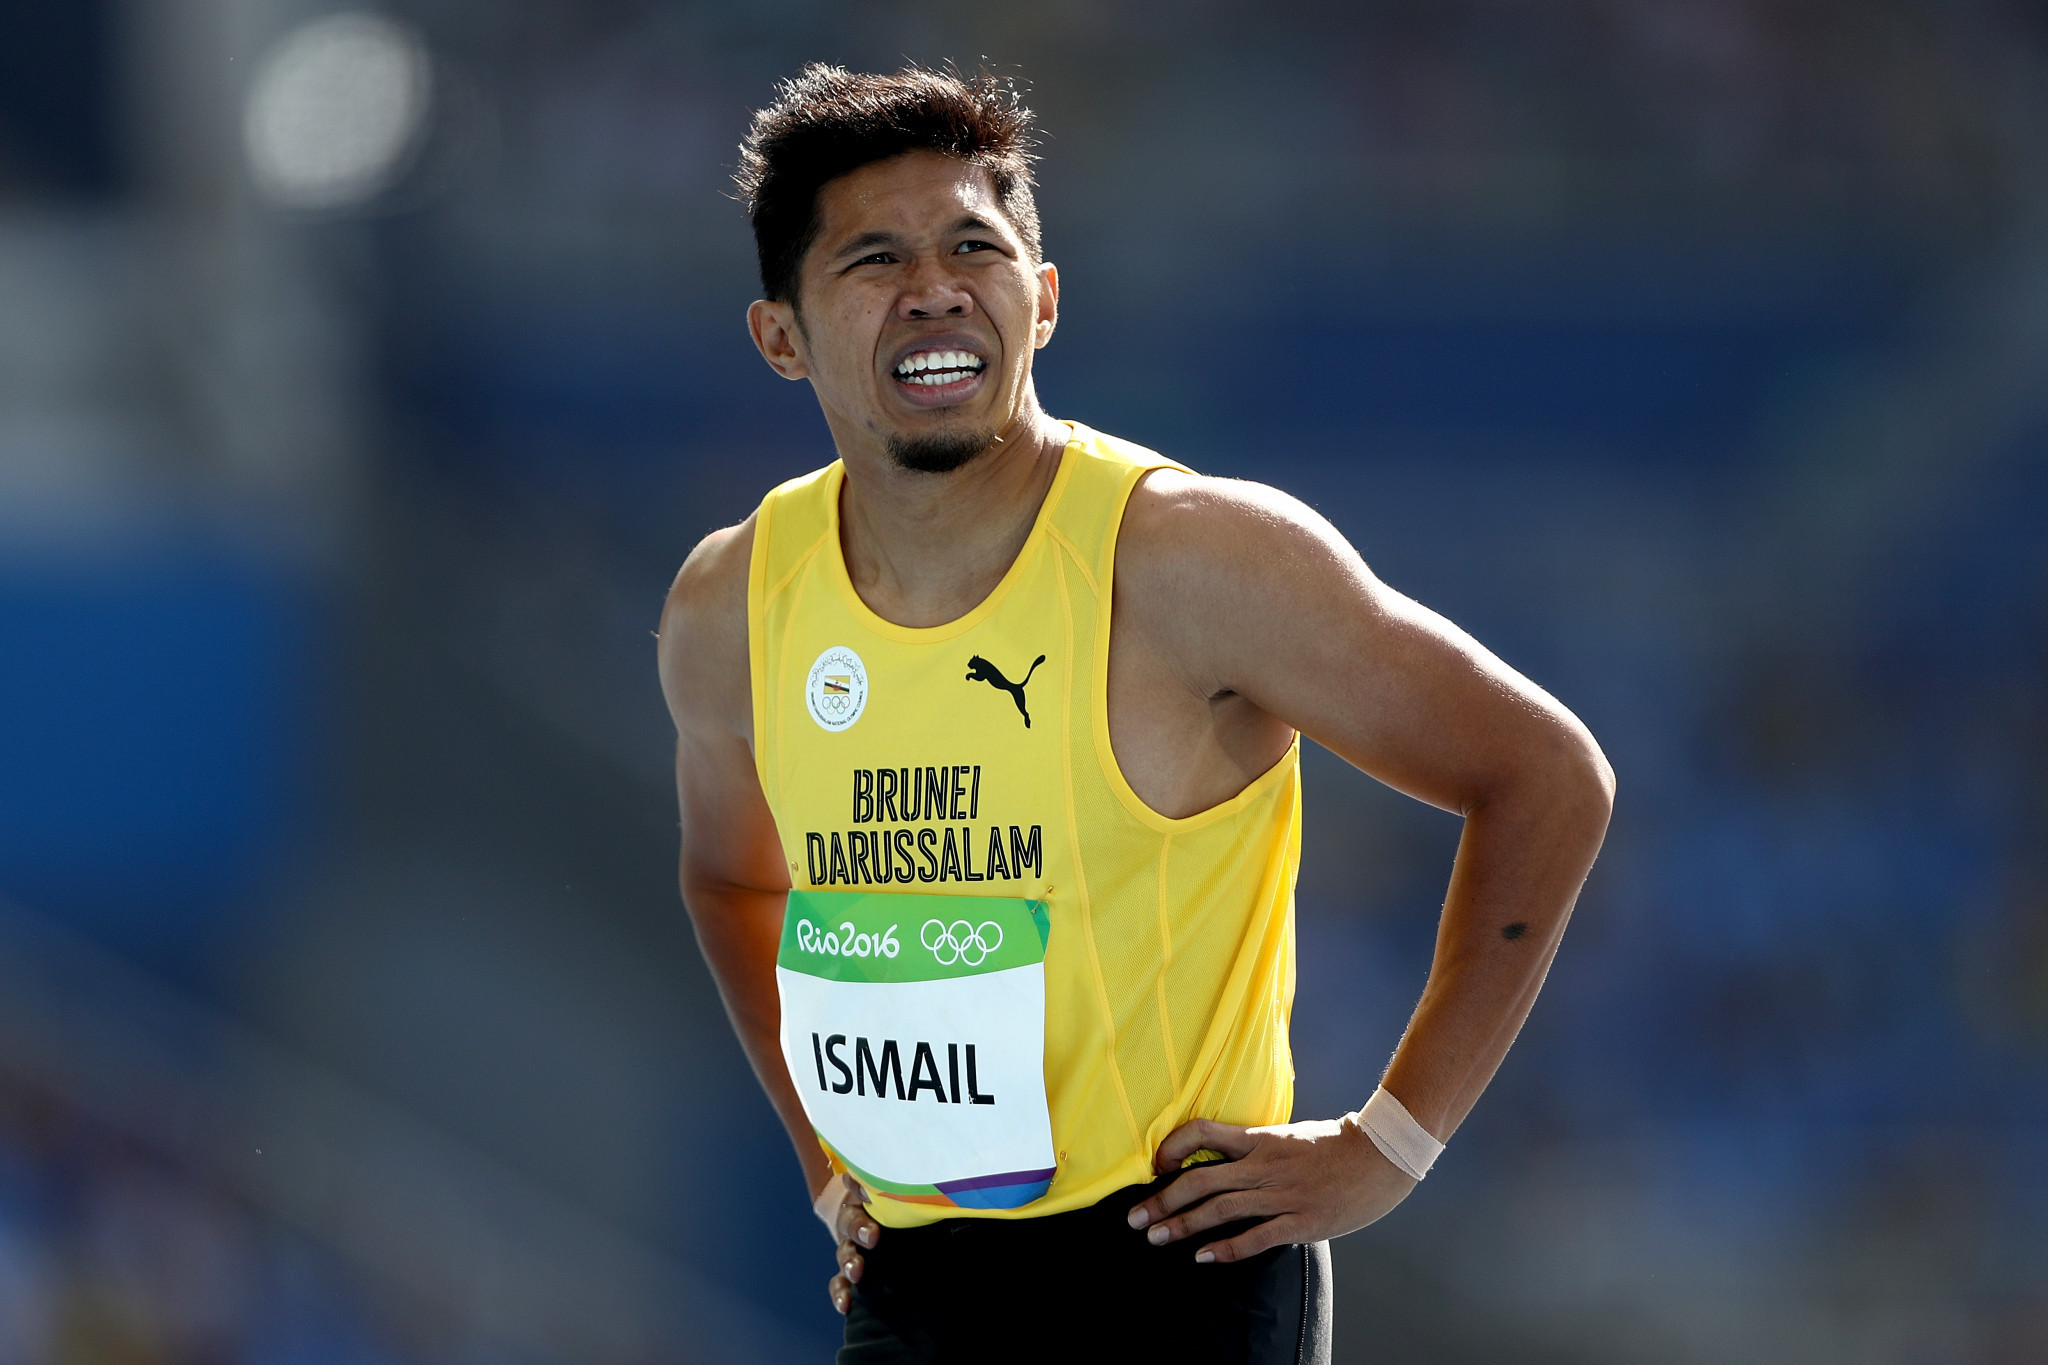 Dr Hj Danish Zaheer helped Brunei athletes across the world ©Getty Images